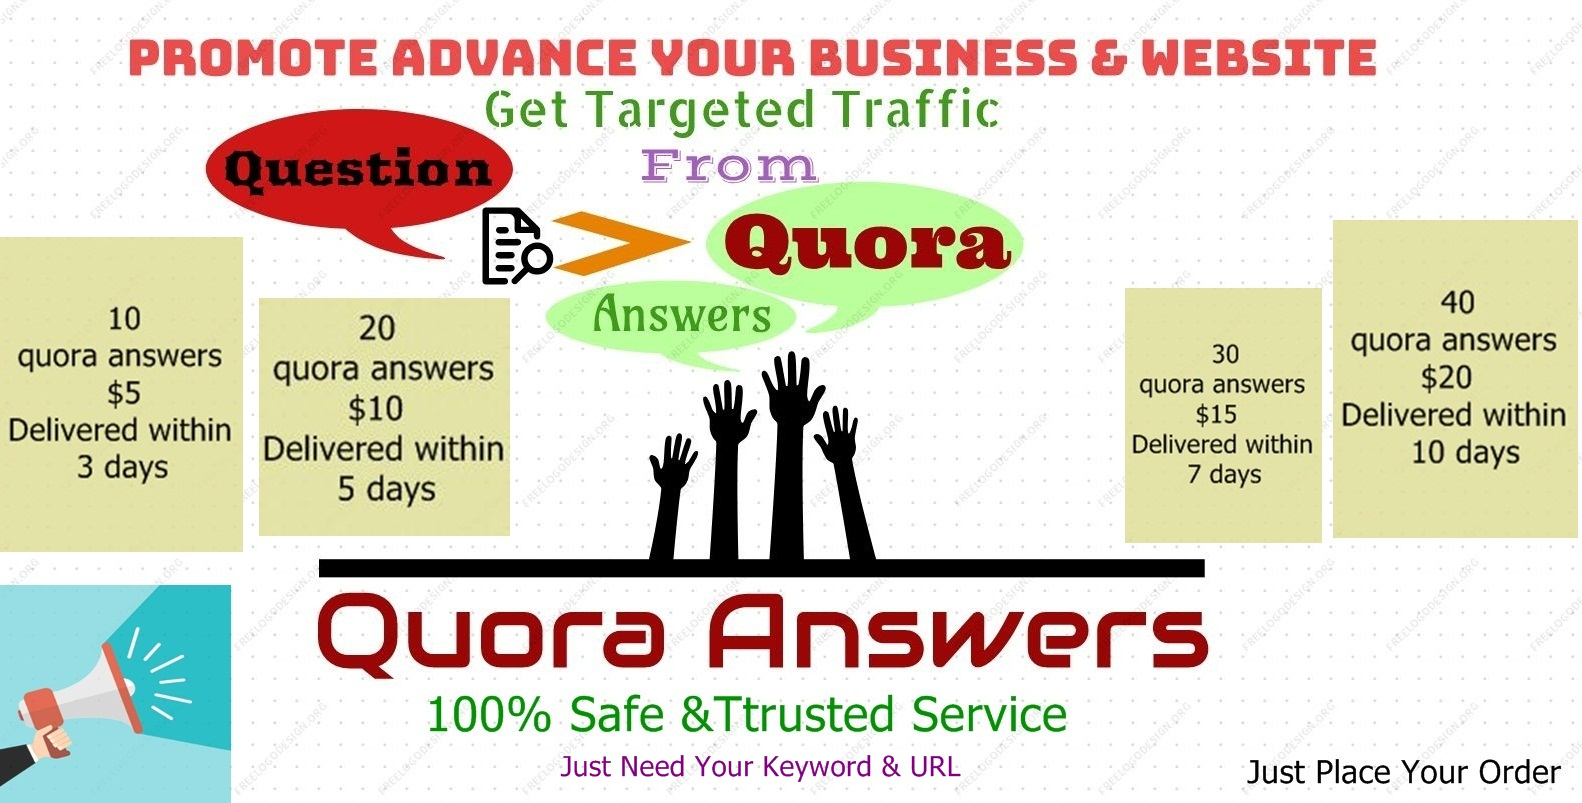 Guaranteed Targeted Traffic with 10 Quora Answers